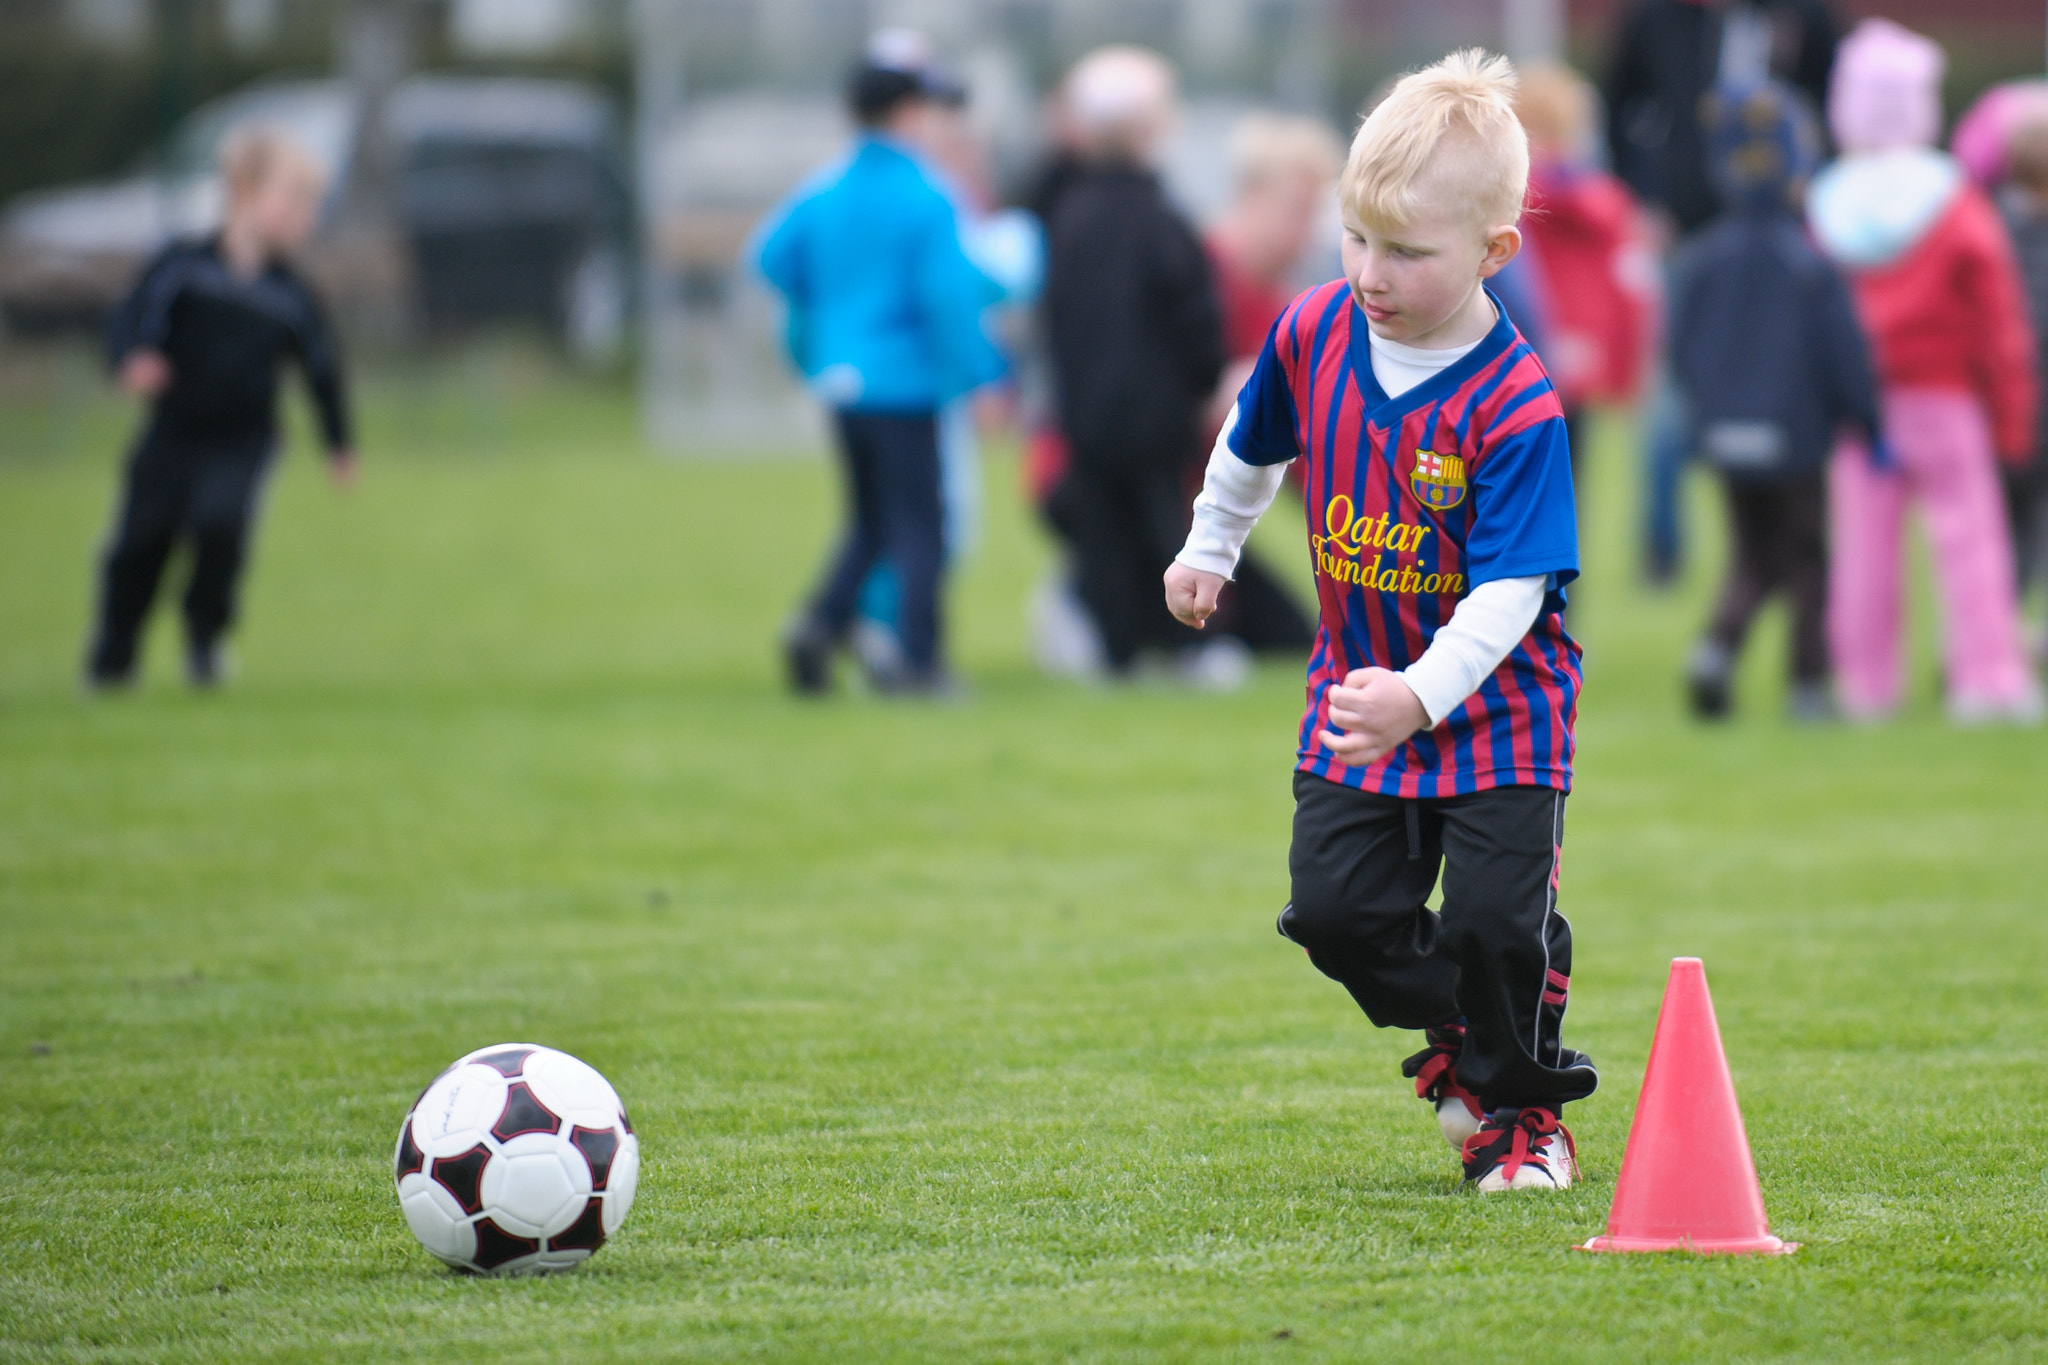 Photograph Colin, first soccer-pratice by Jonas Dandanell on 500px